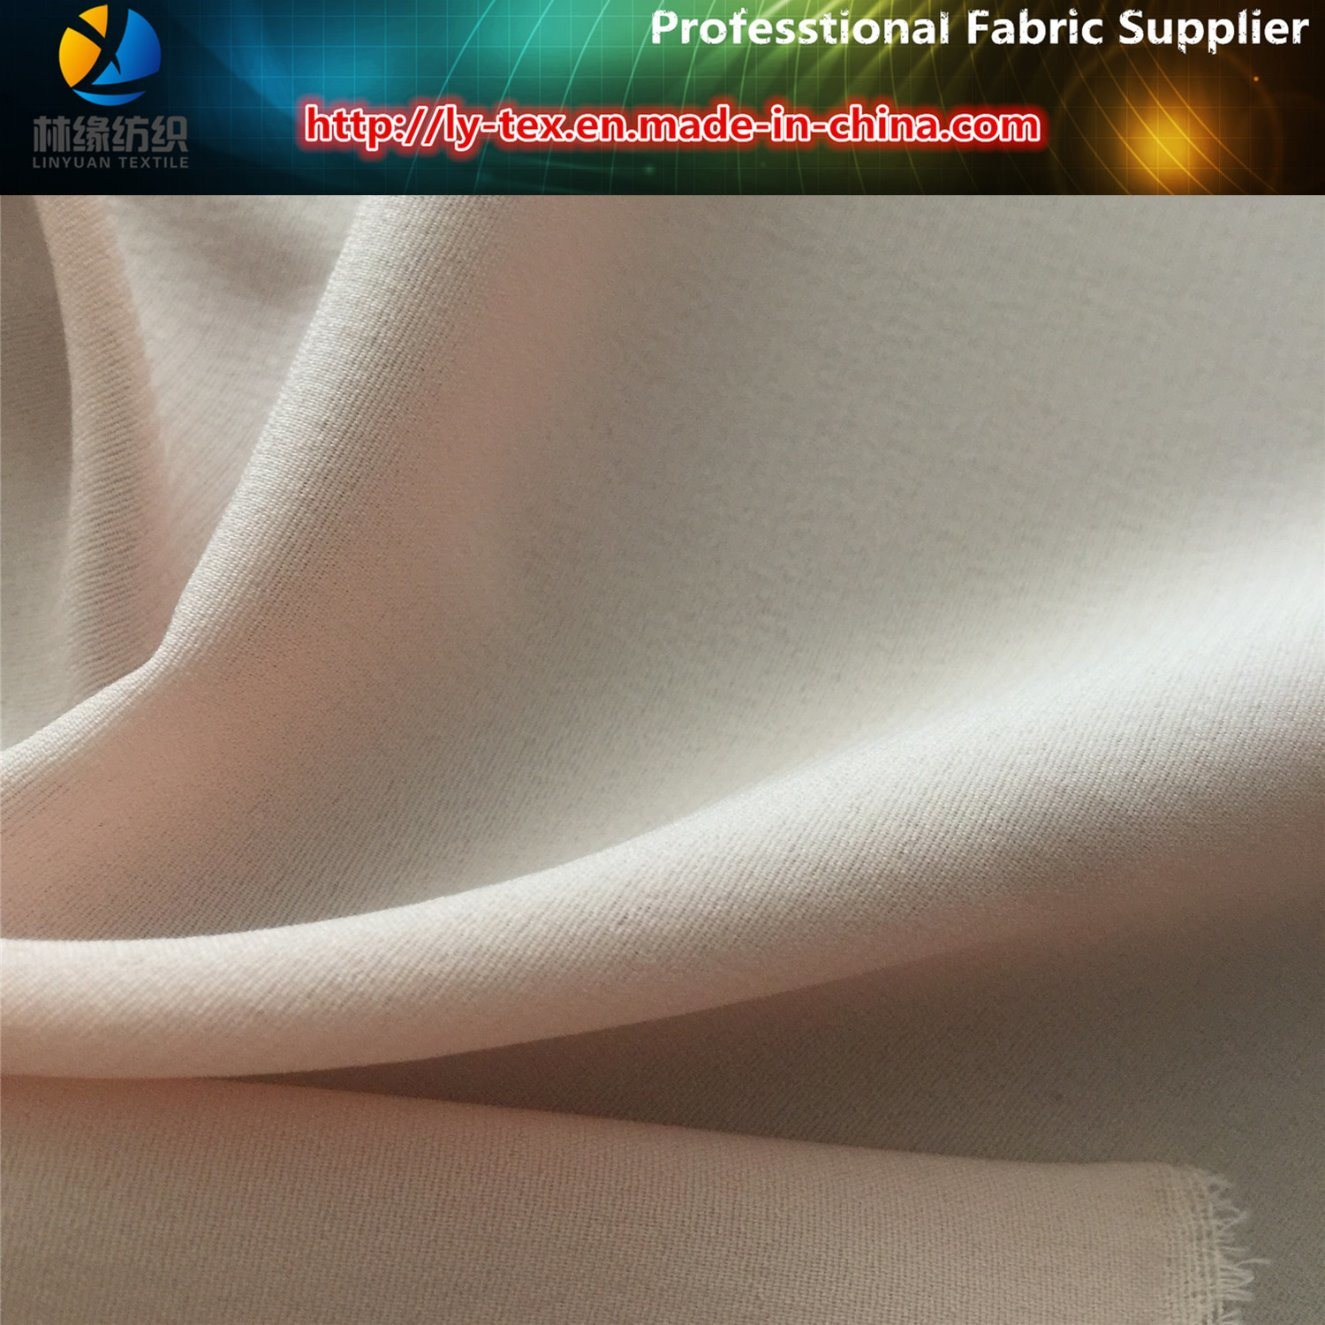 100d Polyester Spandex Chiffon, Polyester Woven Fabric for Summer Dress